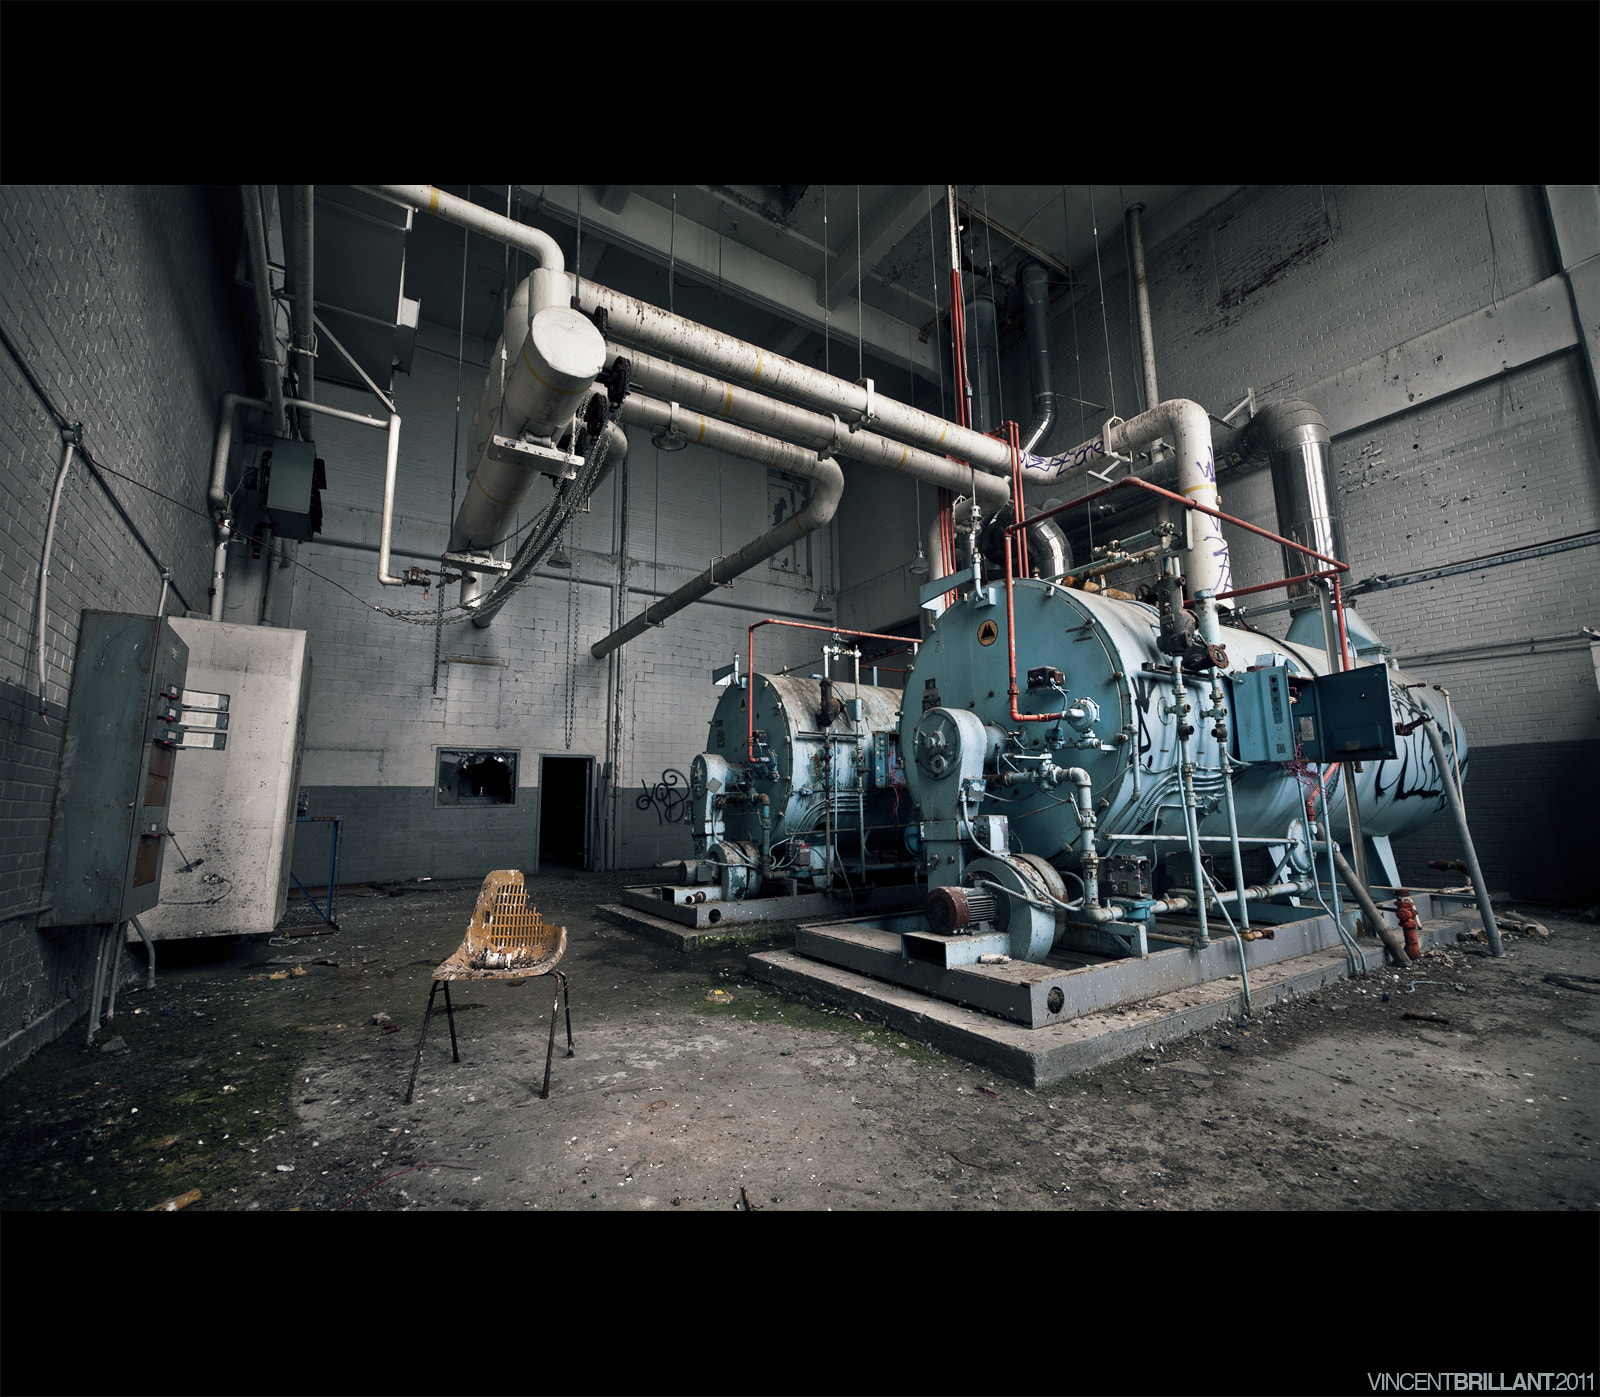 Photograph Boiler Room by Vincent  Brillant on 500px